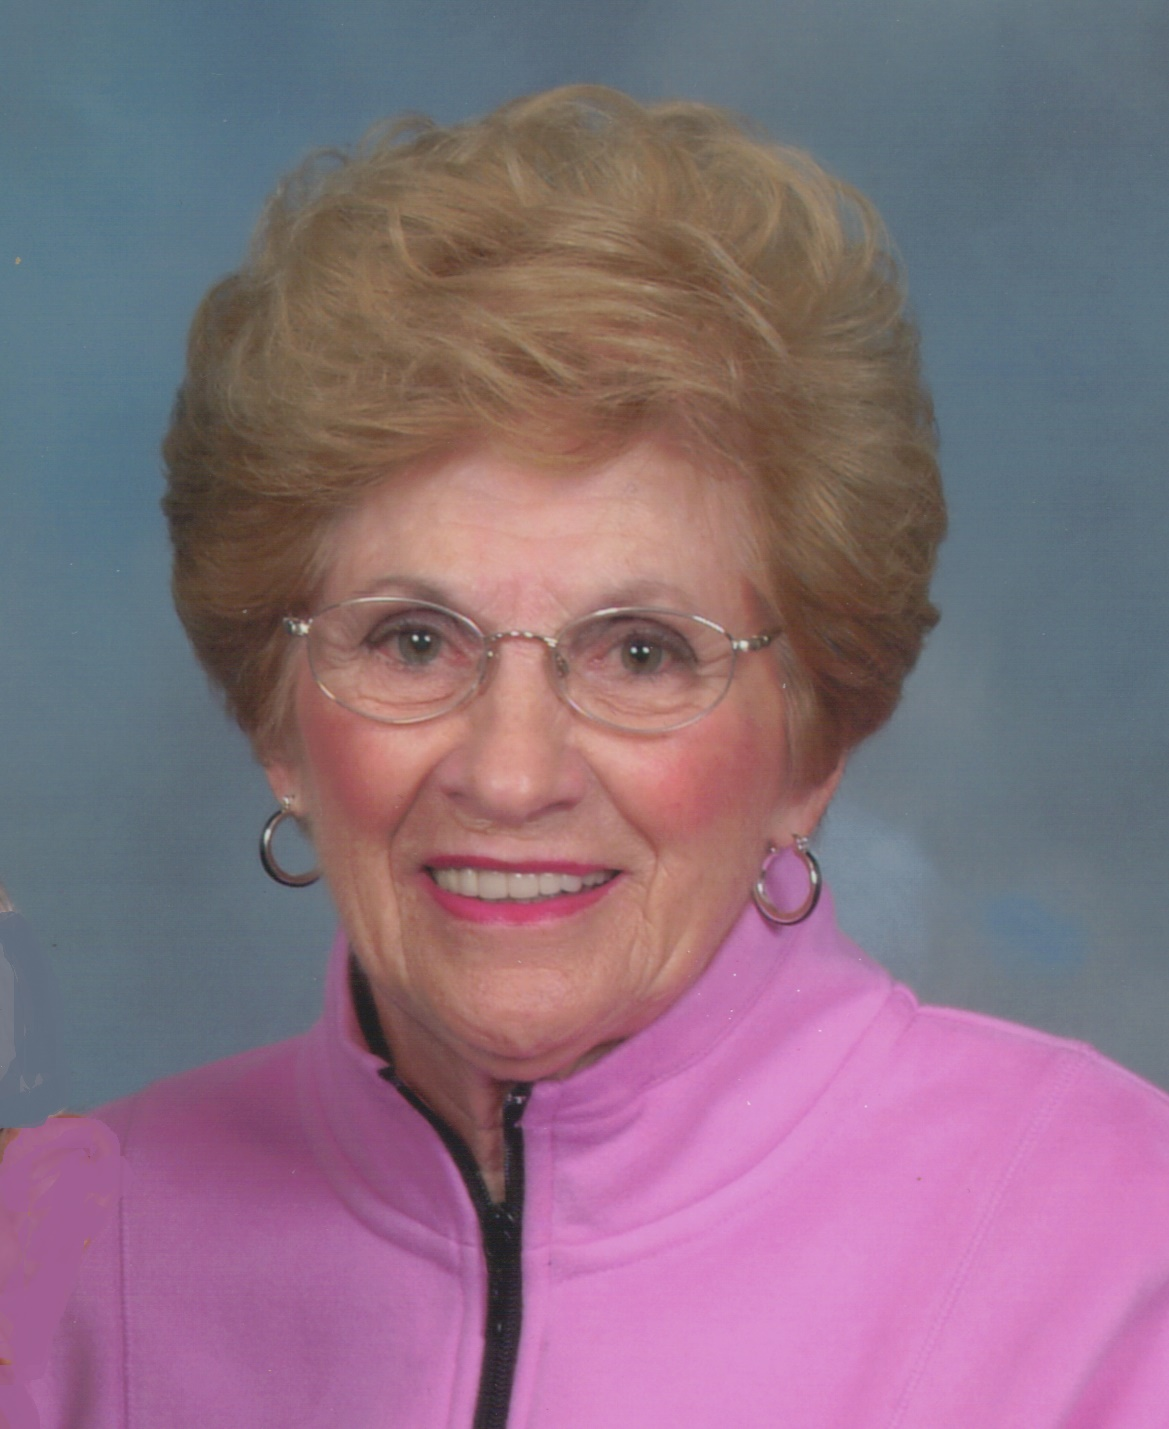 Janet Parr, age 86, of West Point